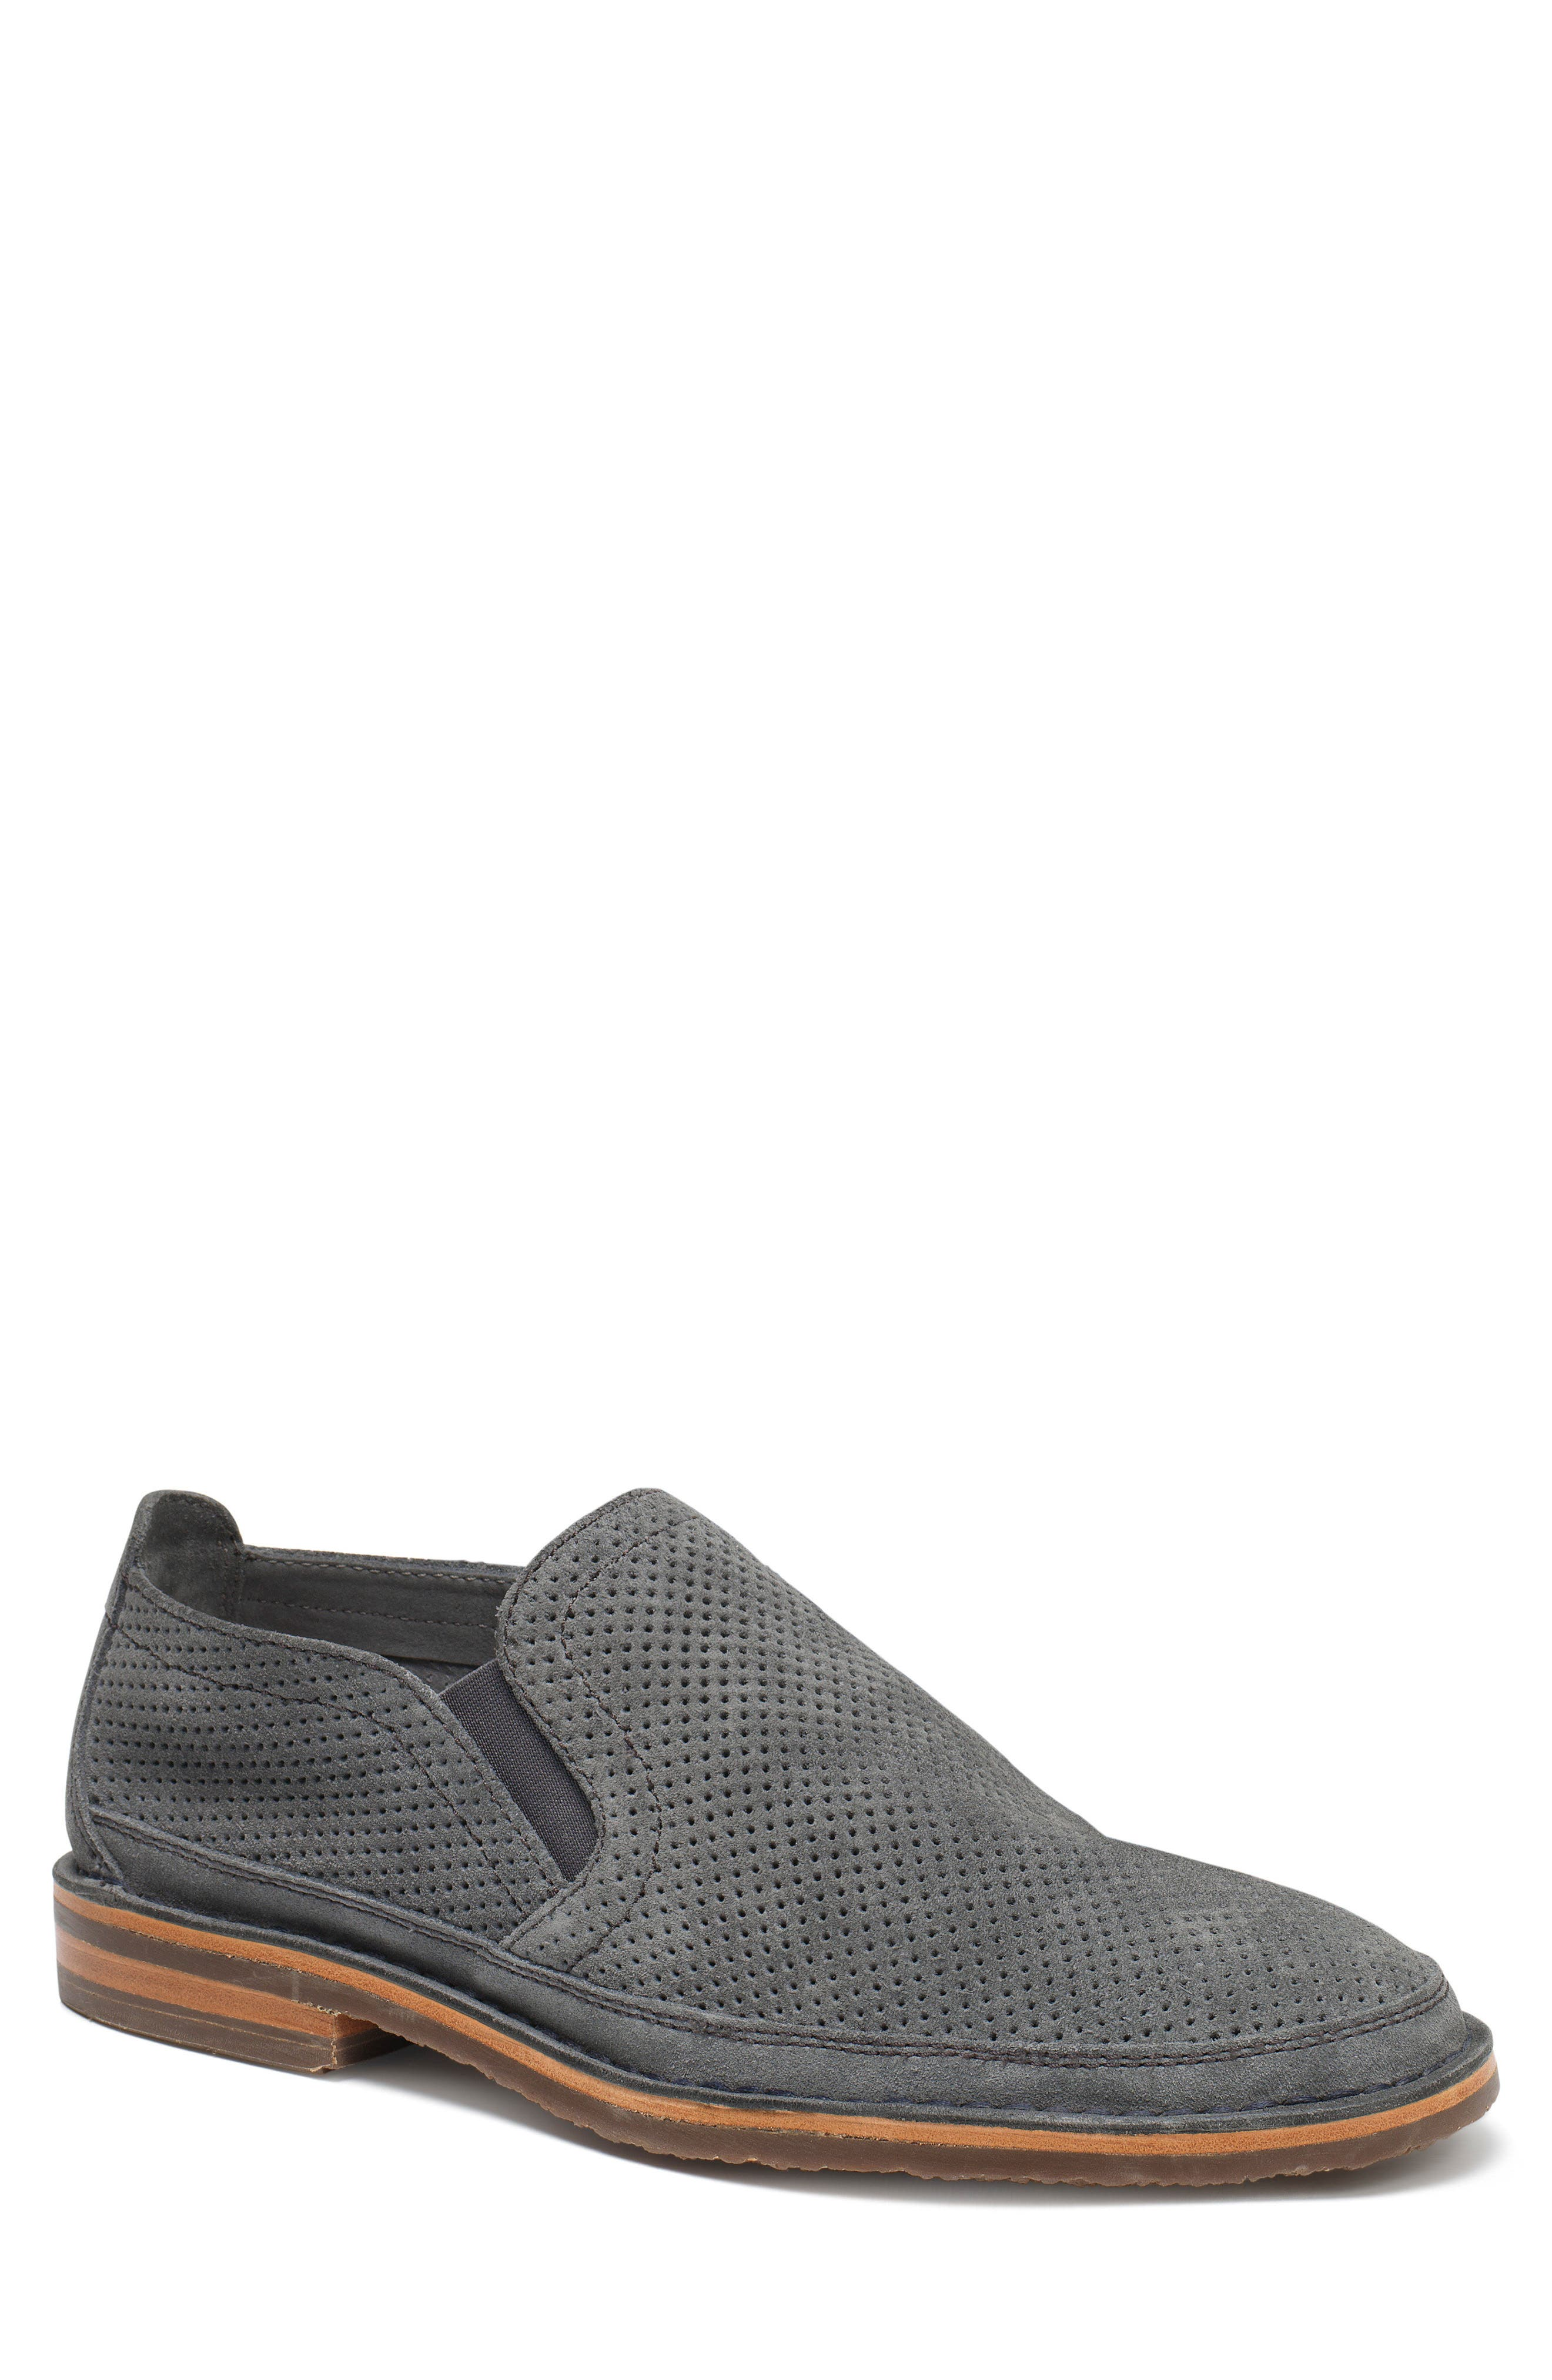 TRASK Bradley Perforated Slip-On, Main, color, SLATE GREY SUEDE